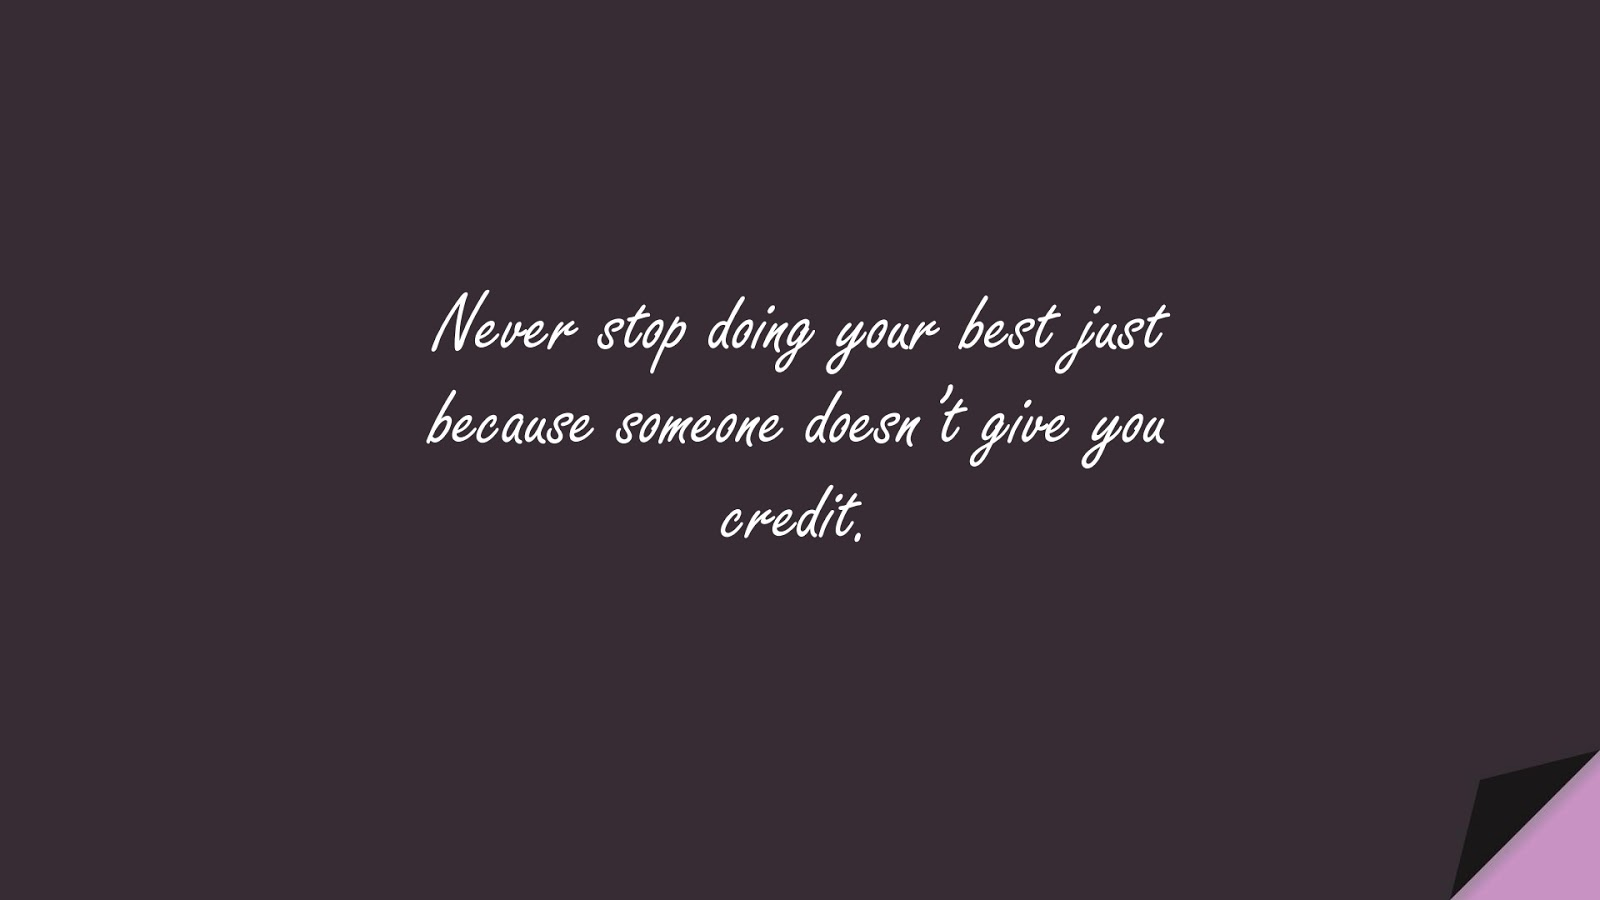 Never stop doing your best just because someone doesn't give you credit.FALSE